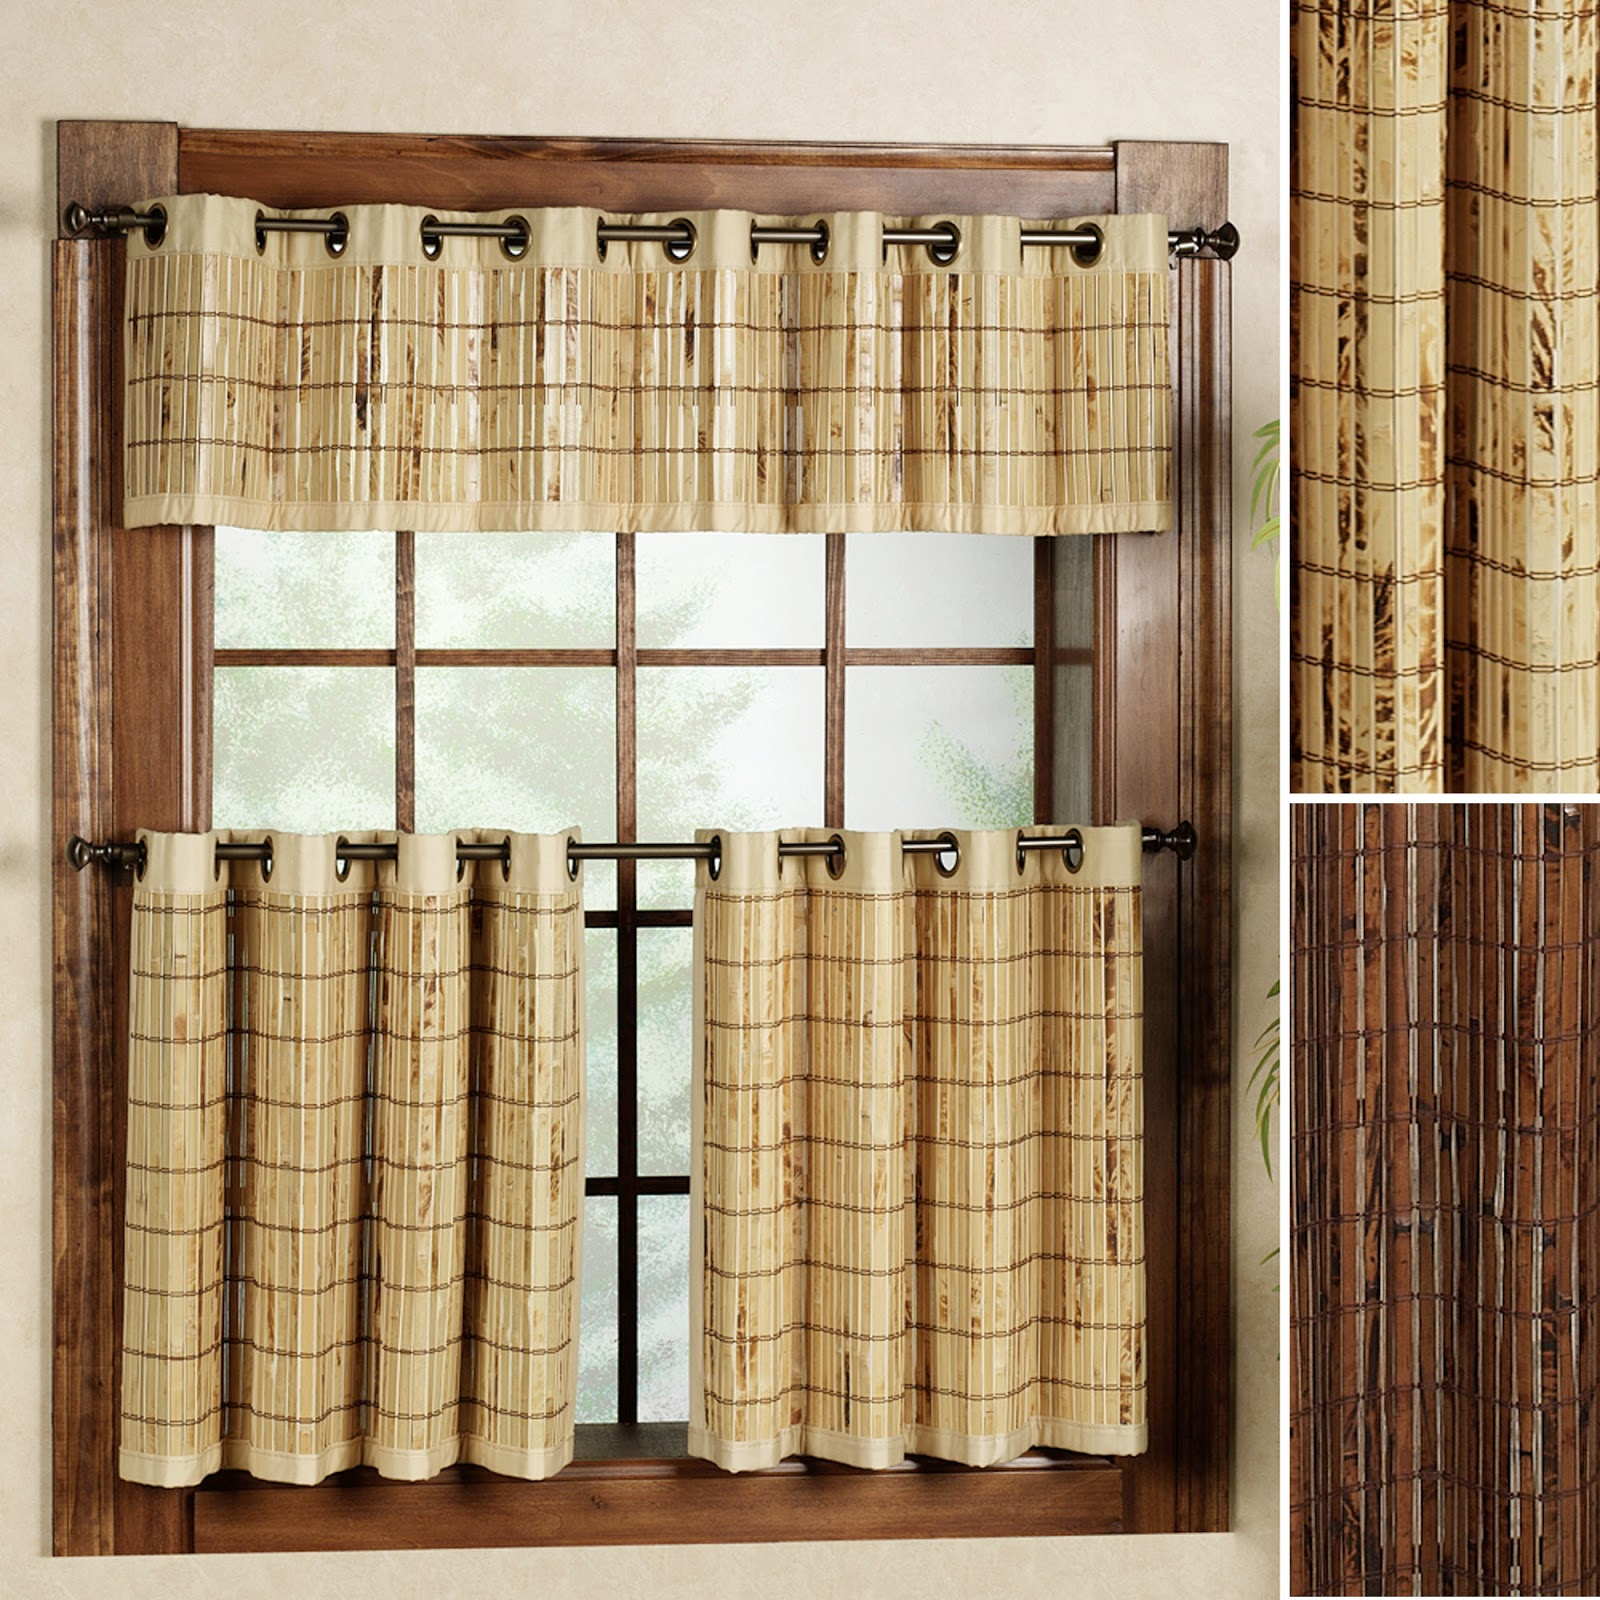 Bamboo Kitchen Curtains: Bamboo Worktops Photos: Bamboo Window Treatments